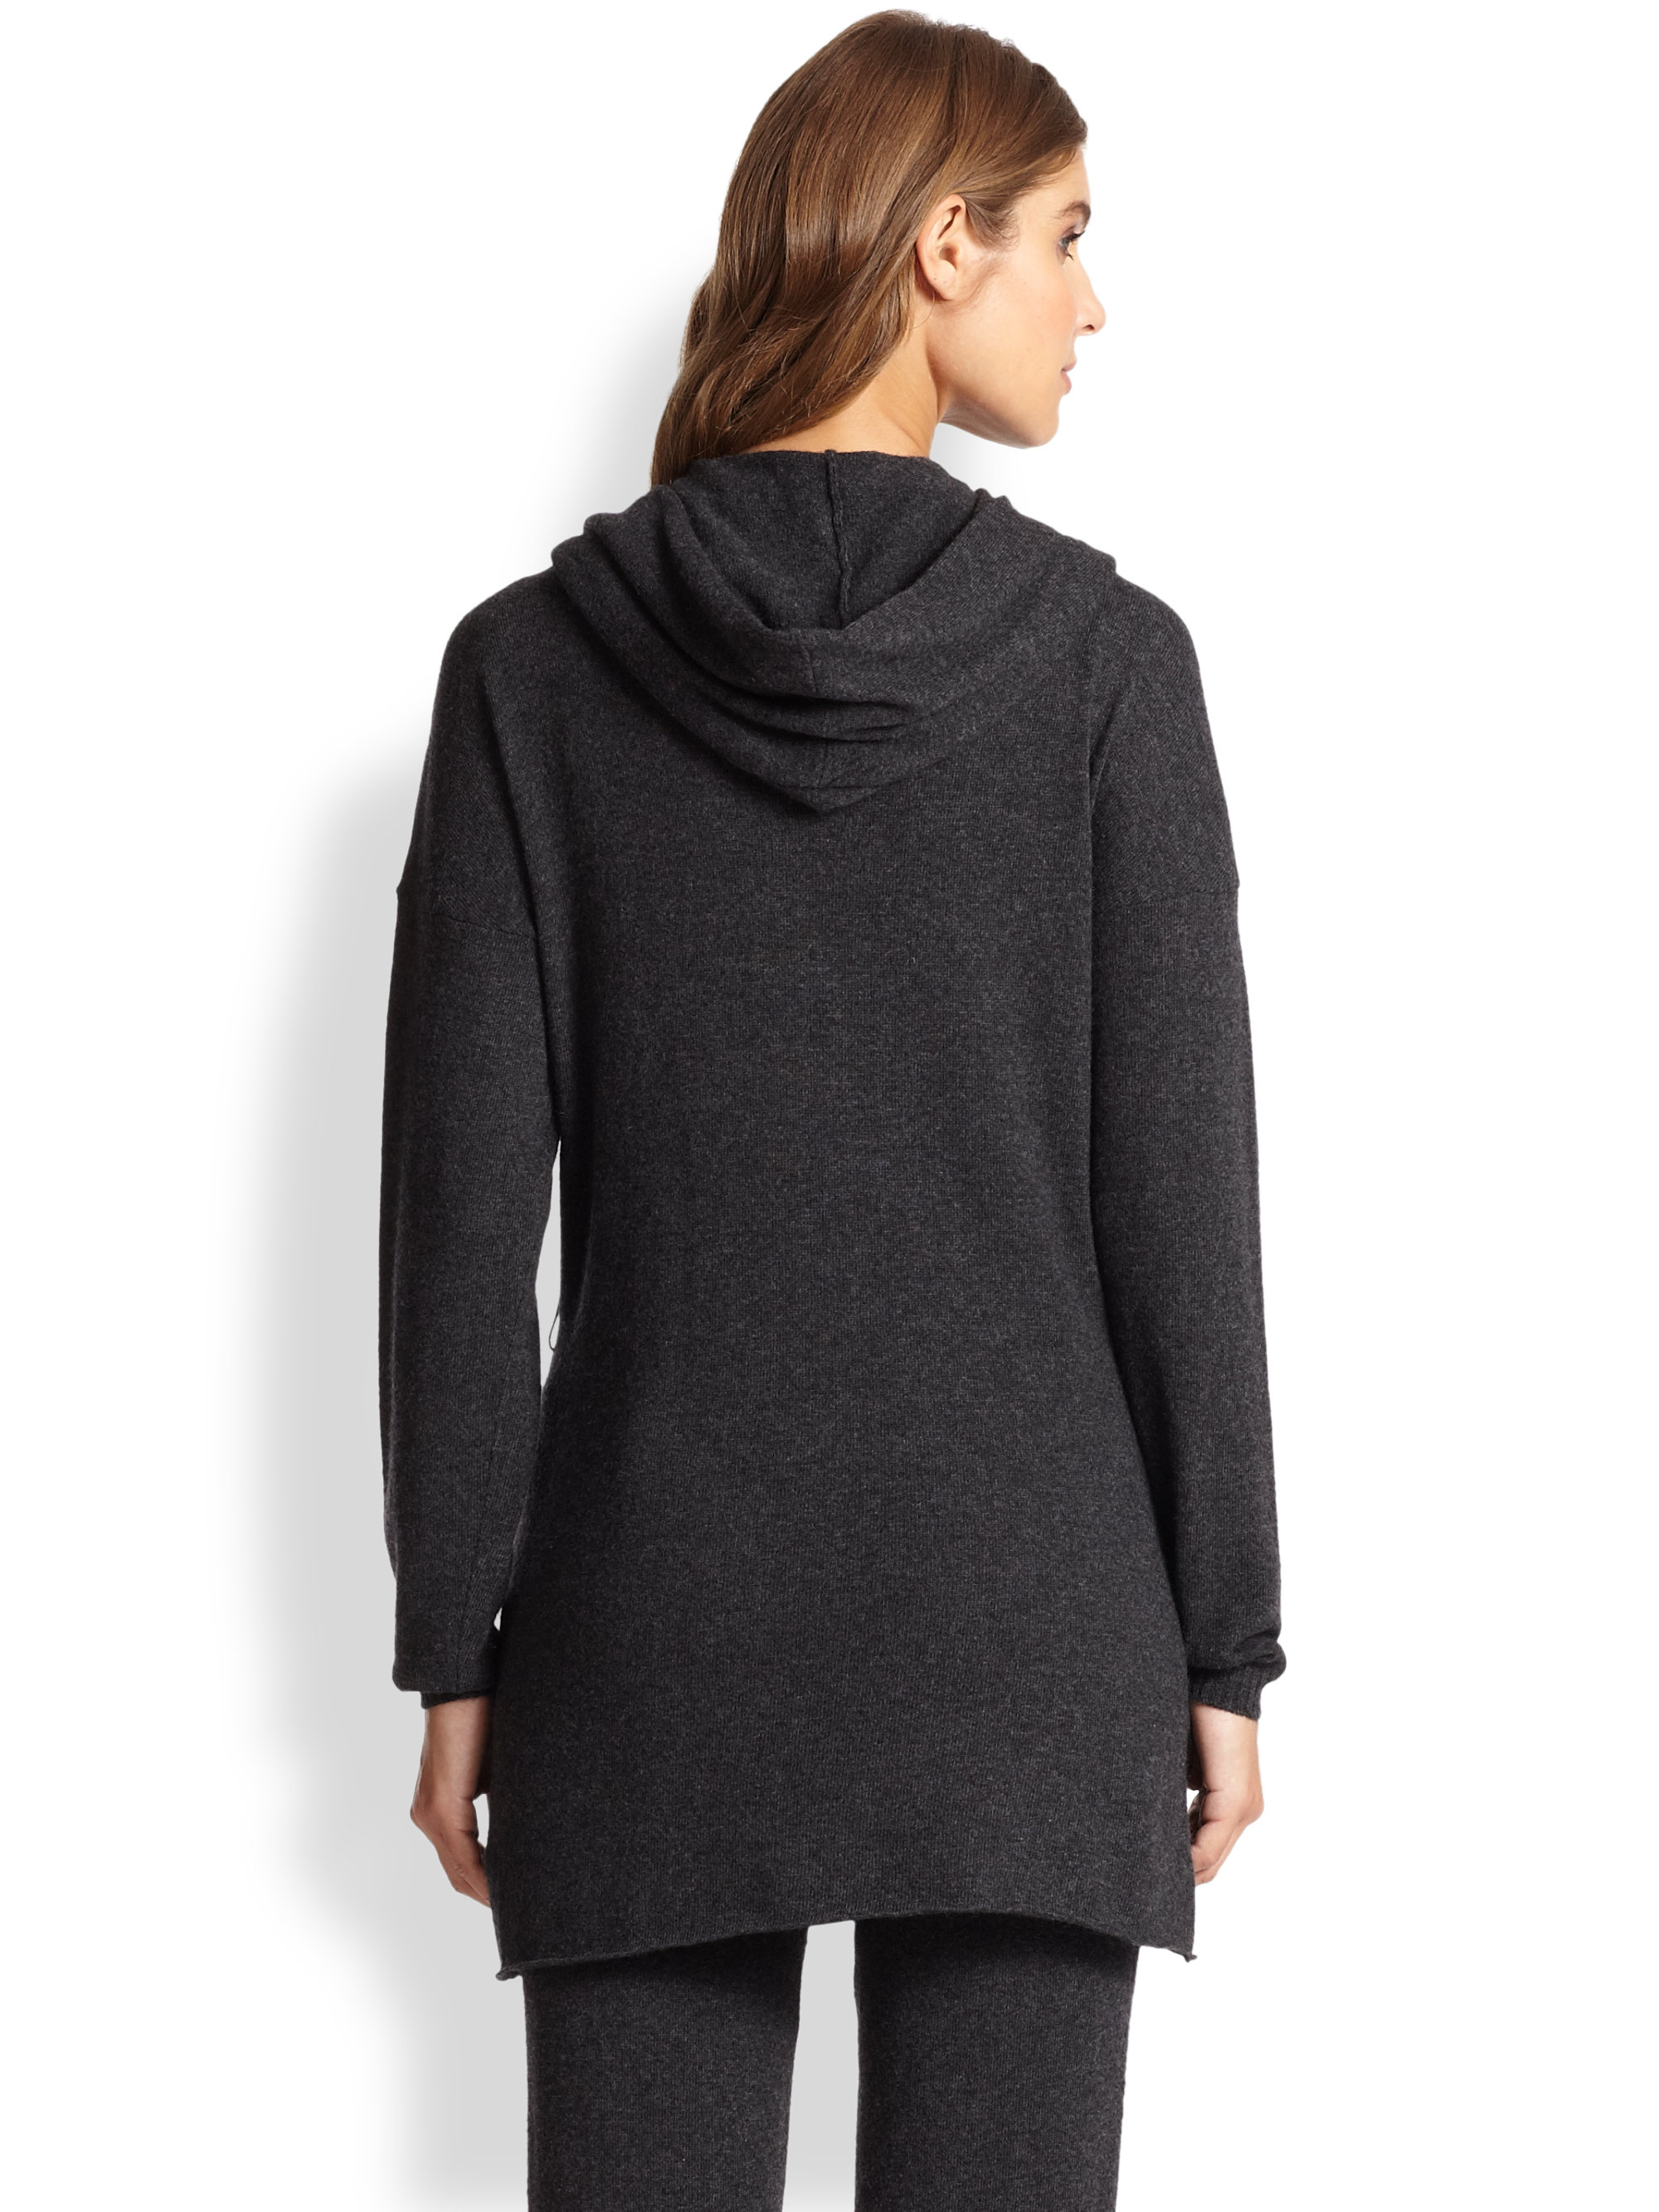 Hanro Crosby Wool-blend Hooded Cardigan in Gray | Lyst